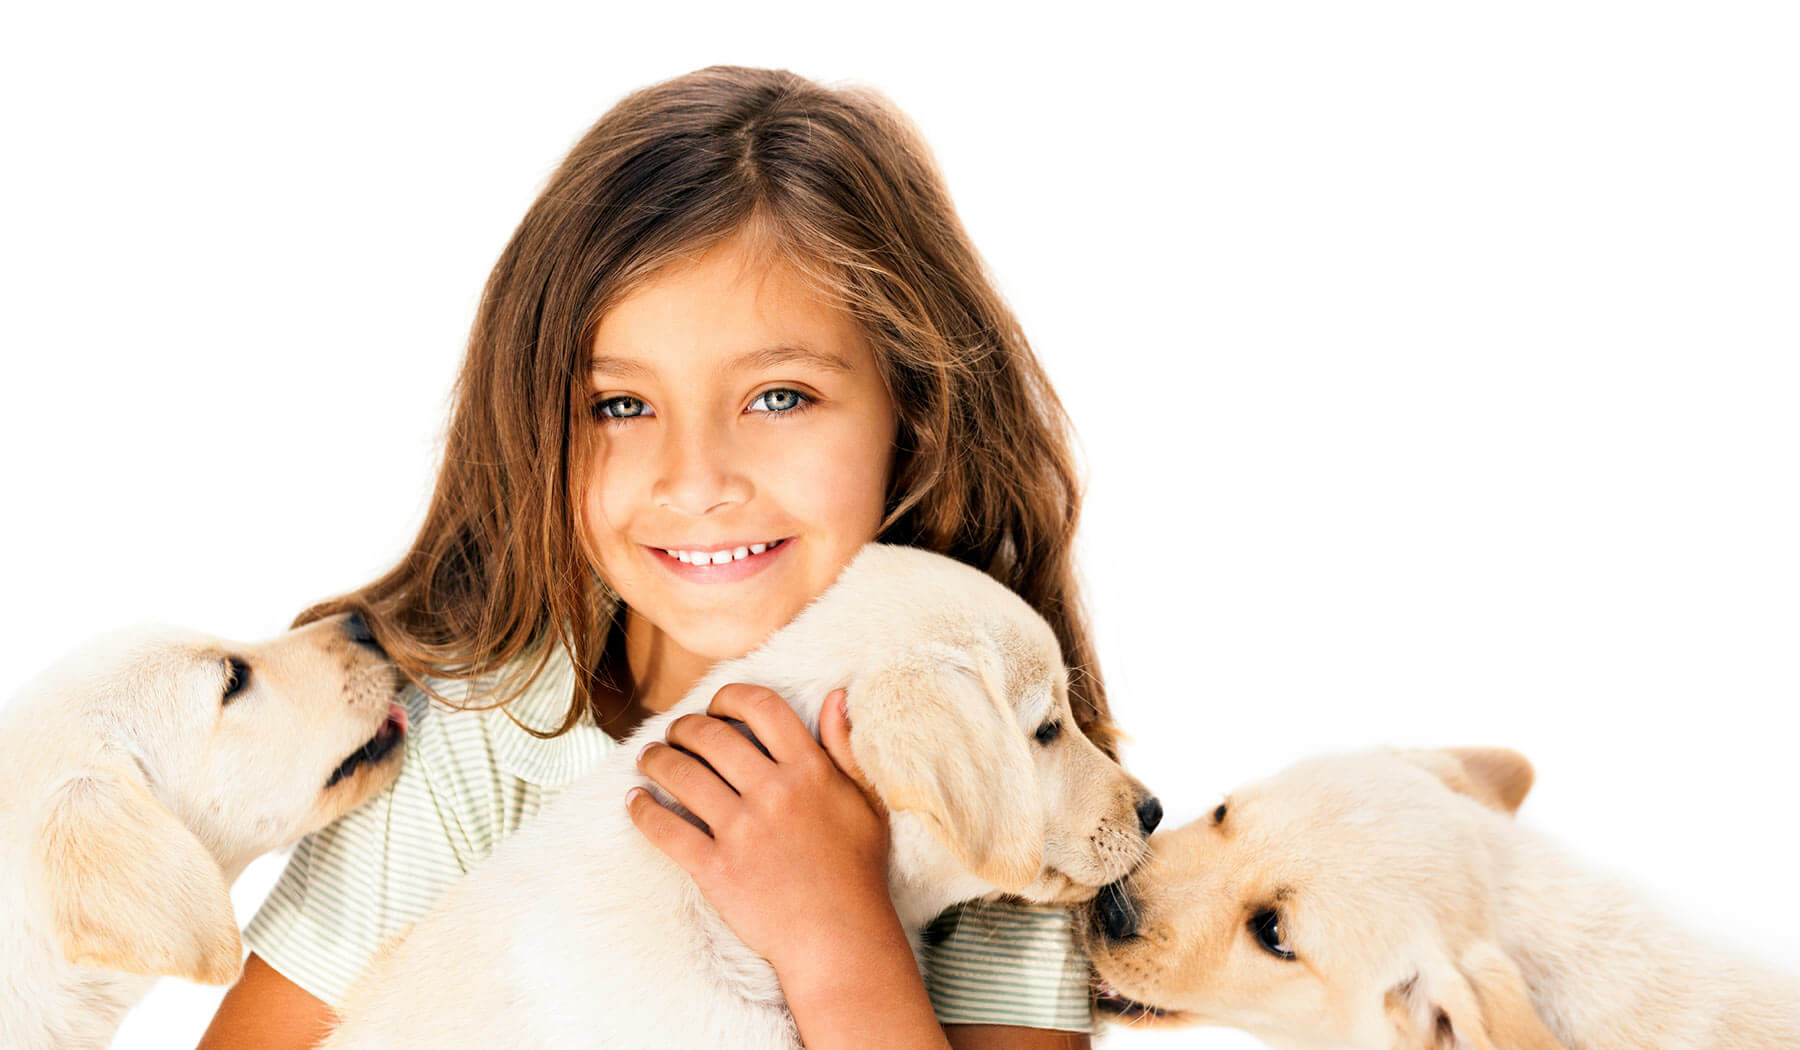 Little girl smiling and holding puppies